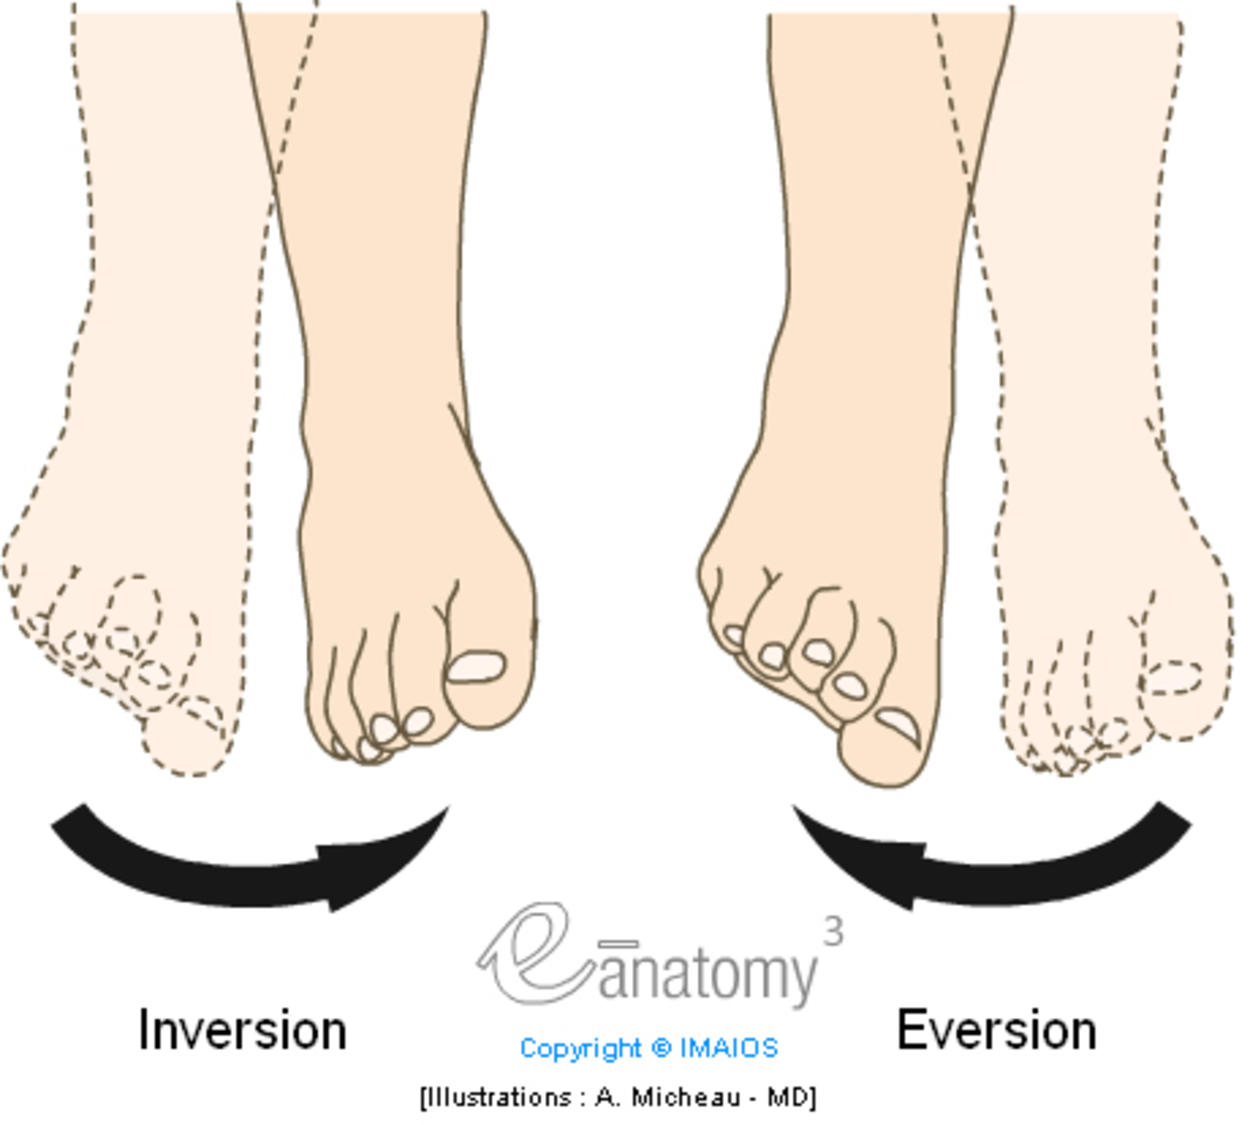 Inversion/Eversion : Bewegungen, Atlas der Anatomie, Medizinische Illustrationen